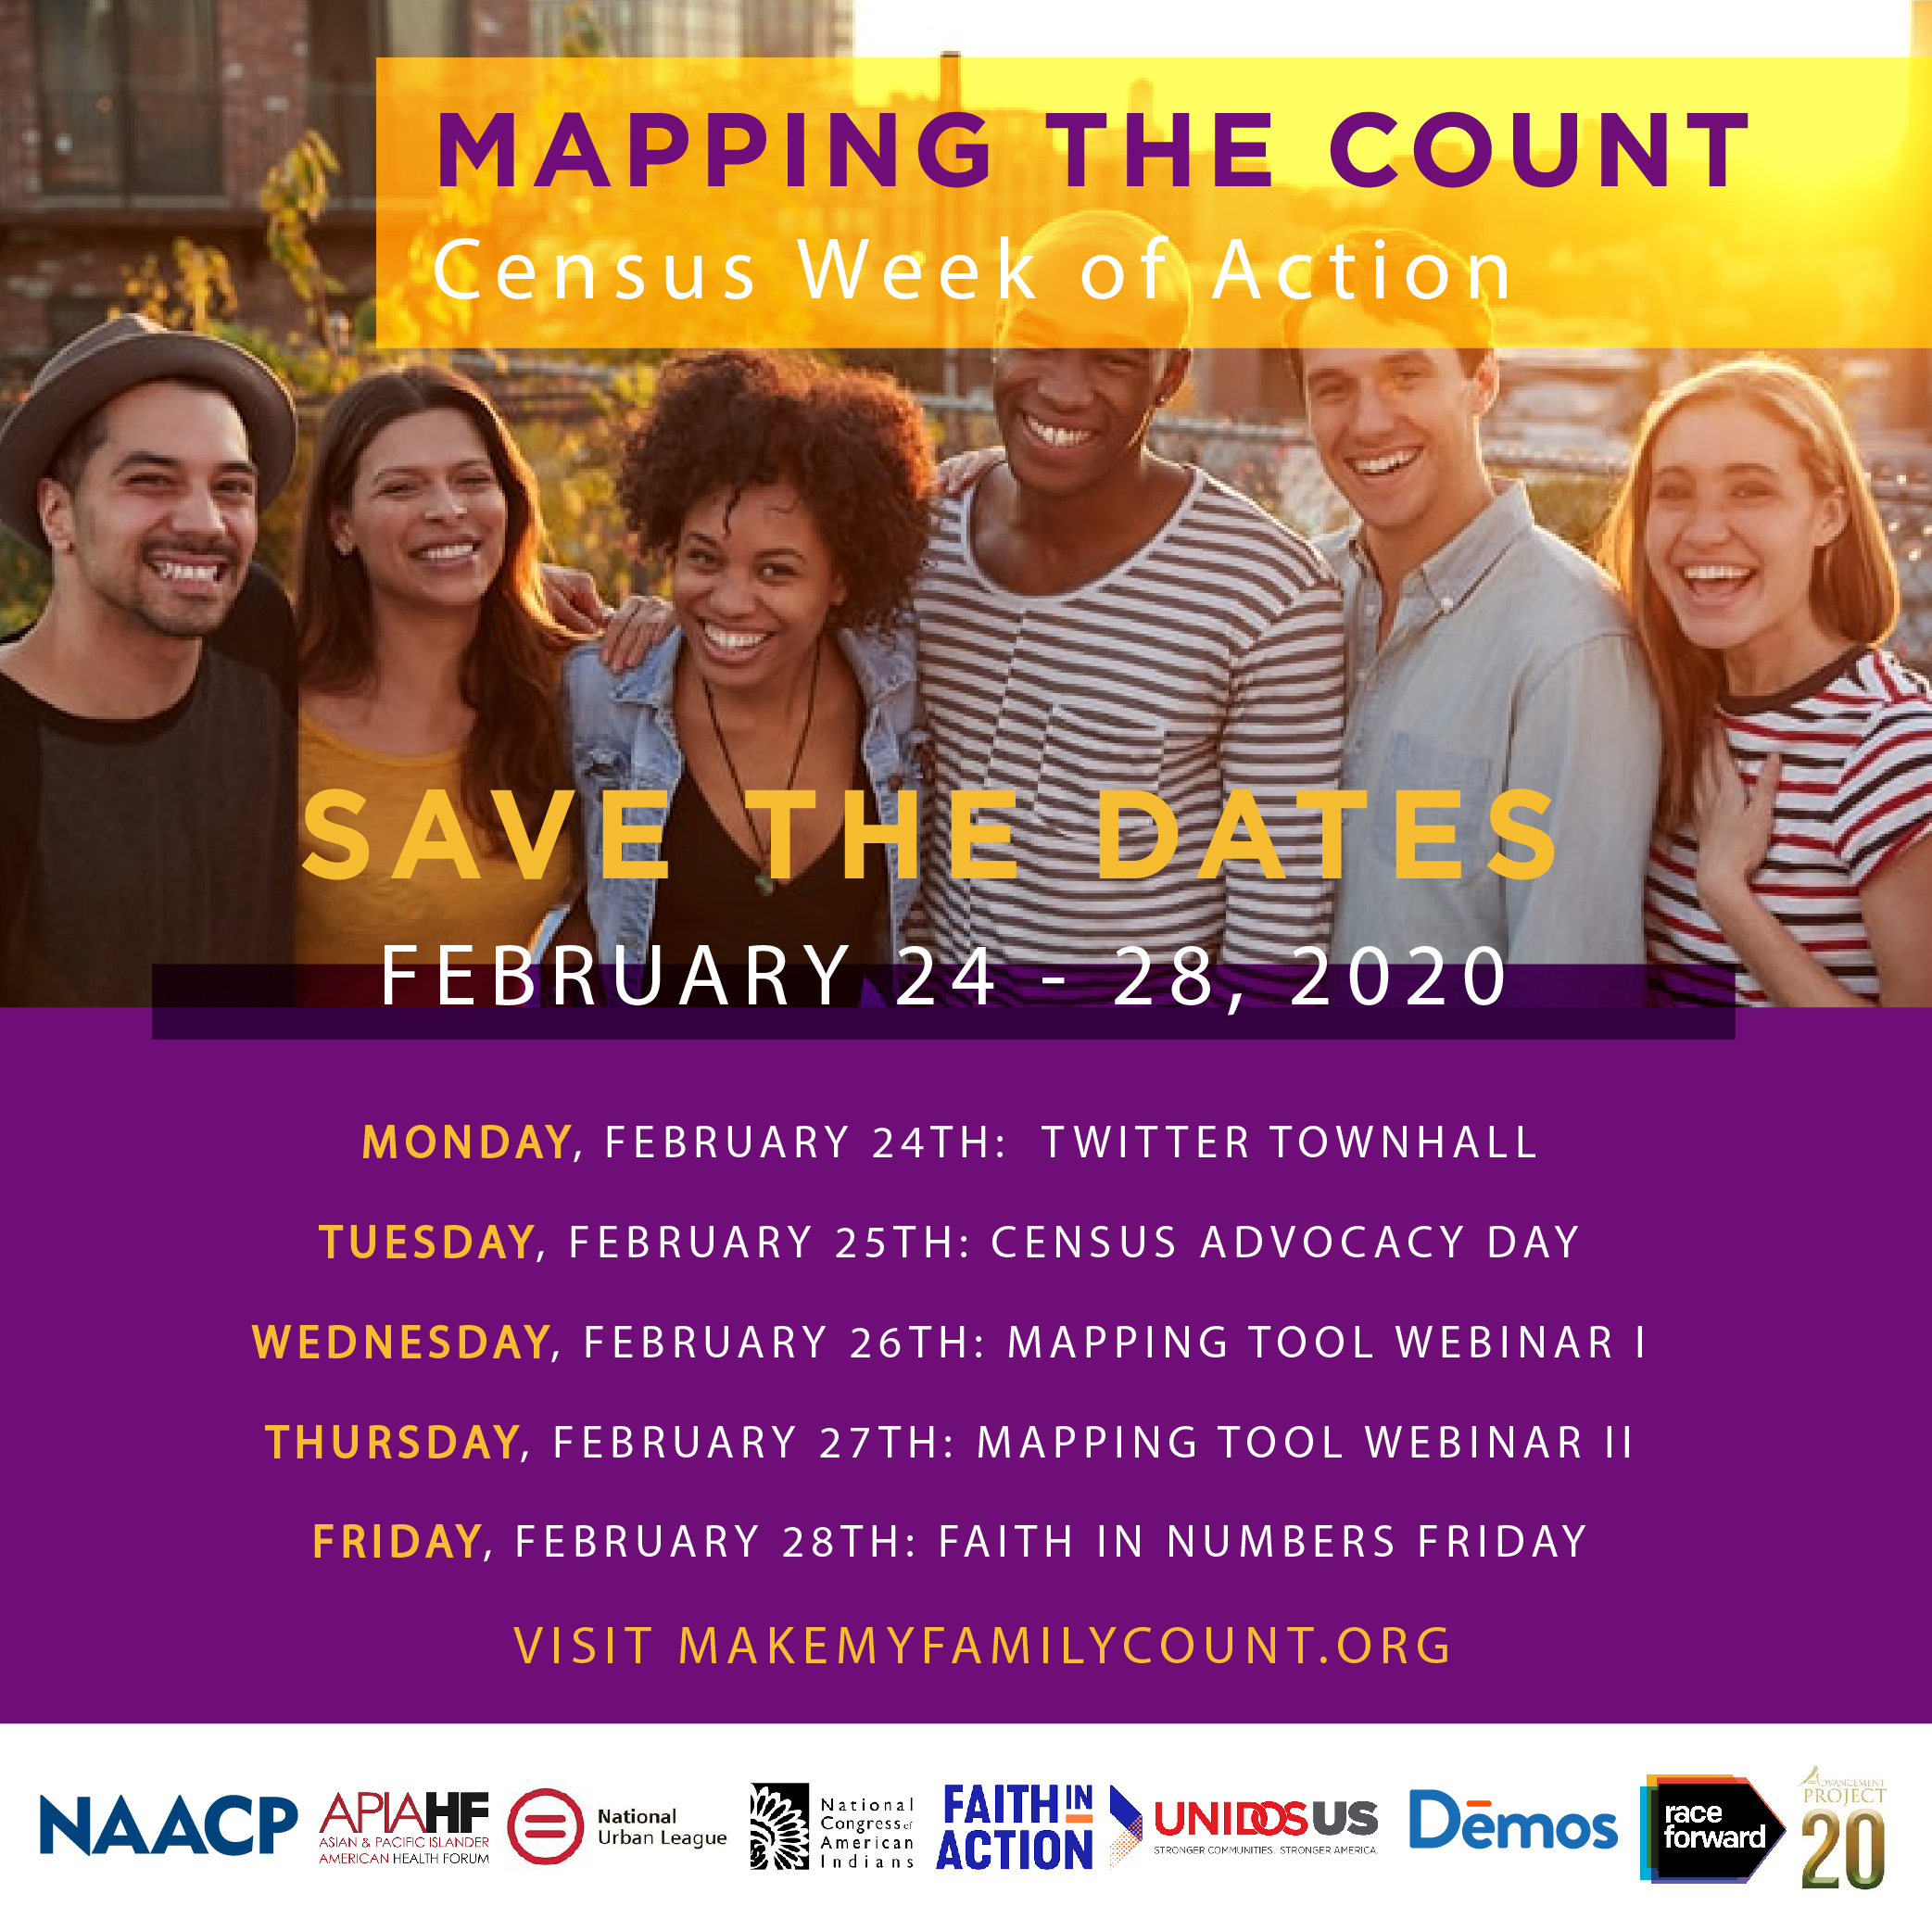 For more information on the Census Week of Action, visit naacp.org and follow us on Twitter and Instagram @NAACP.